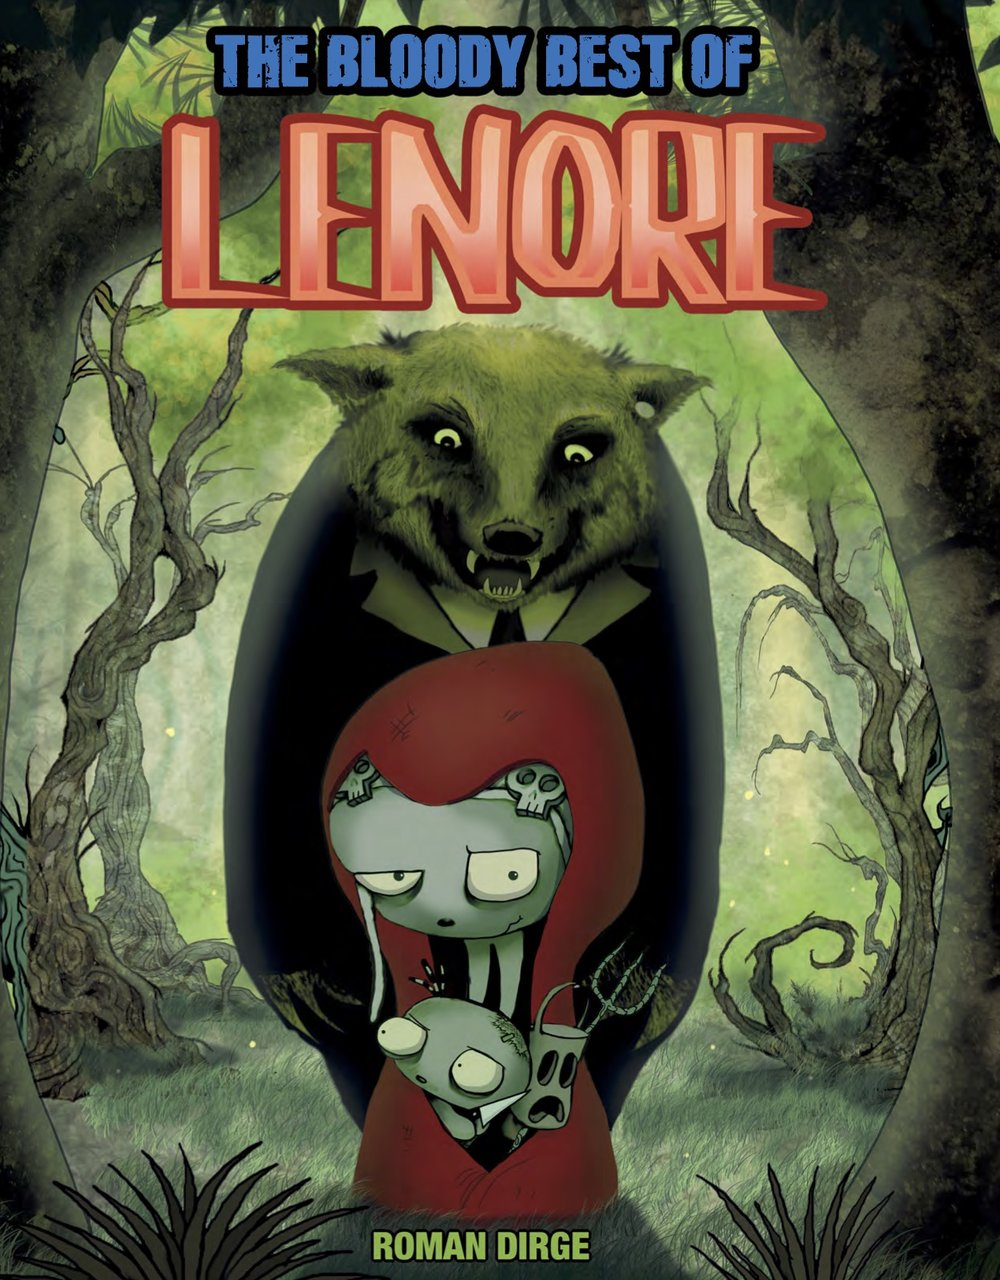 The_Bloody_Best_of_Lenore_Cover.jpg